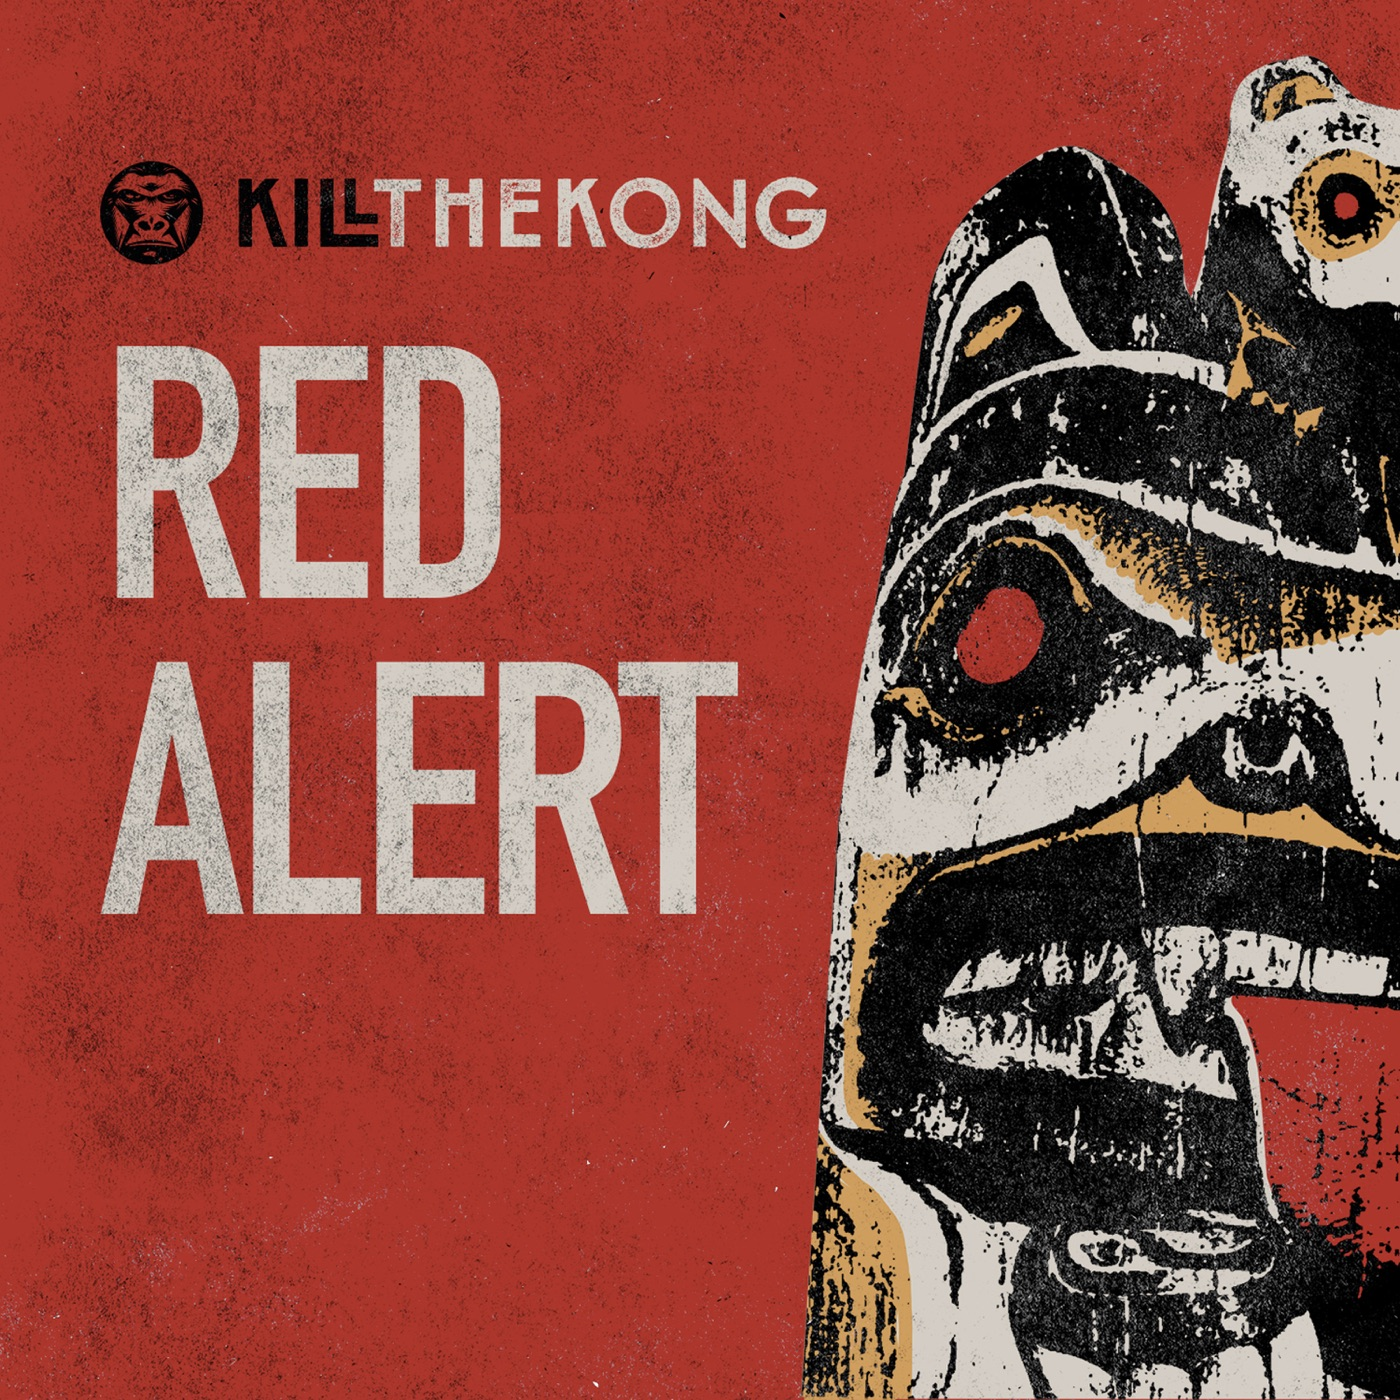 Kill The Kong - Red Alert [maxi-single] (2019)